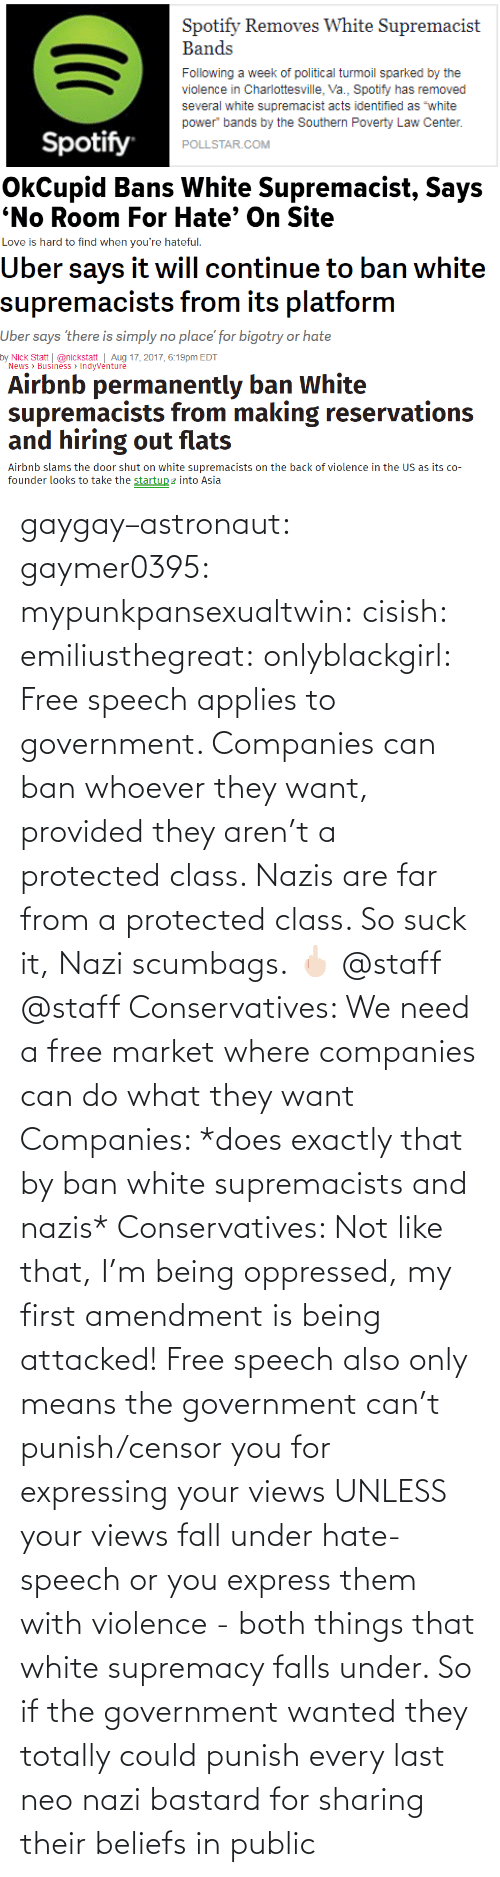 Express: gaygay–astronaut: gaymer0395:  mypunkpansexualtwin:  cisish:  emiliusthegreat:  onlyblackgirl:   Free speech applies to government. Companies can ban whoever they want, provided they aren't a protected class. Nazis are far from a protected class. So suck it, Nazi scumbags. 🖕🏻   @staff      @staff     Conservatives: We need a free market where companies can do what they want Companies: *does exactly that by ban white supremacists and nazis* Conservatives: Not like that, I'm being oppressed, my first amendment is being attacked!  Free speech also only means the government can't punish/censor you for expressing your views UNLESS your views fall under hate-speech or you express them with violence - both things that white supremacy falls under. So if the government wanted they totally could punish every last neo nazi bastard for sharing their beliefs in public